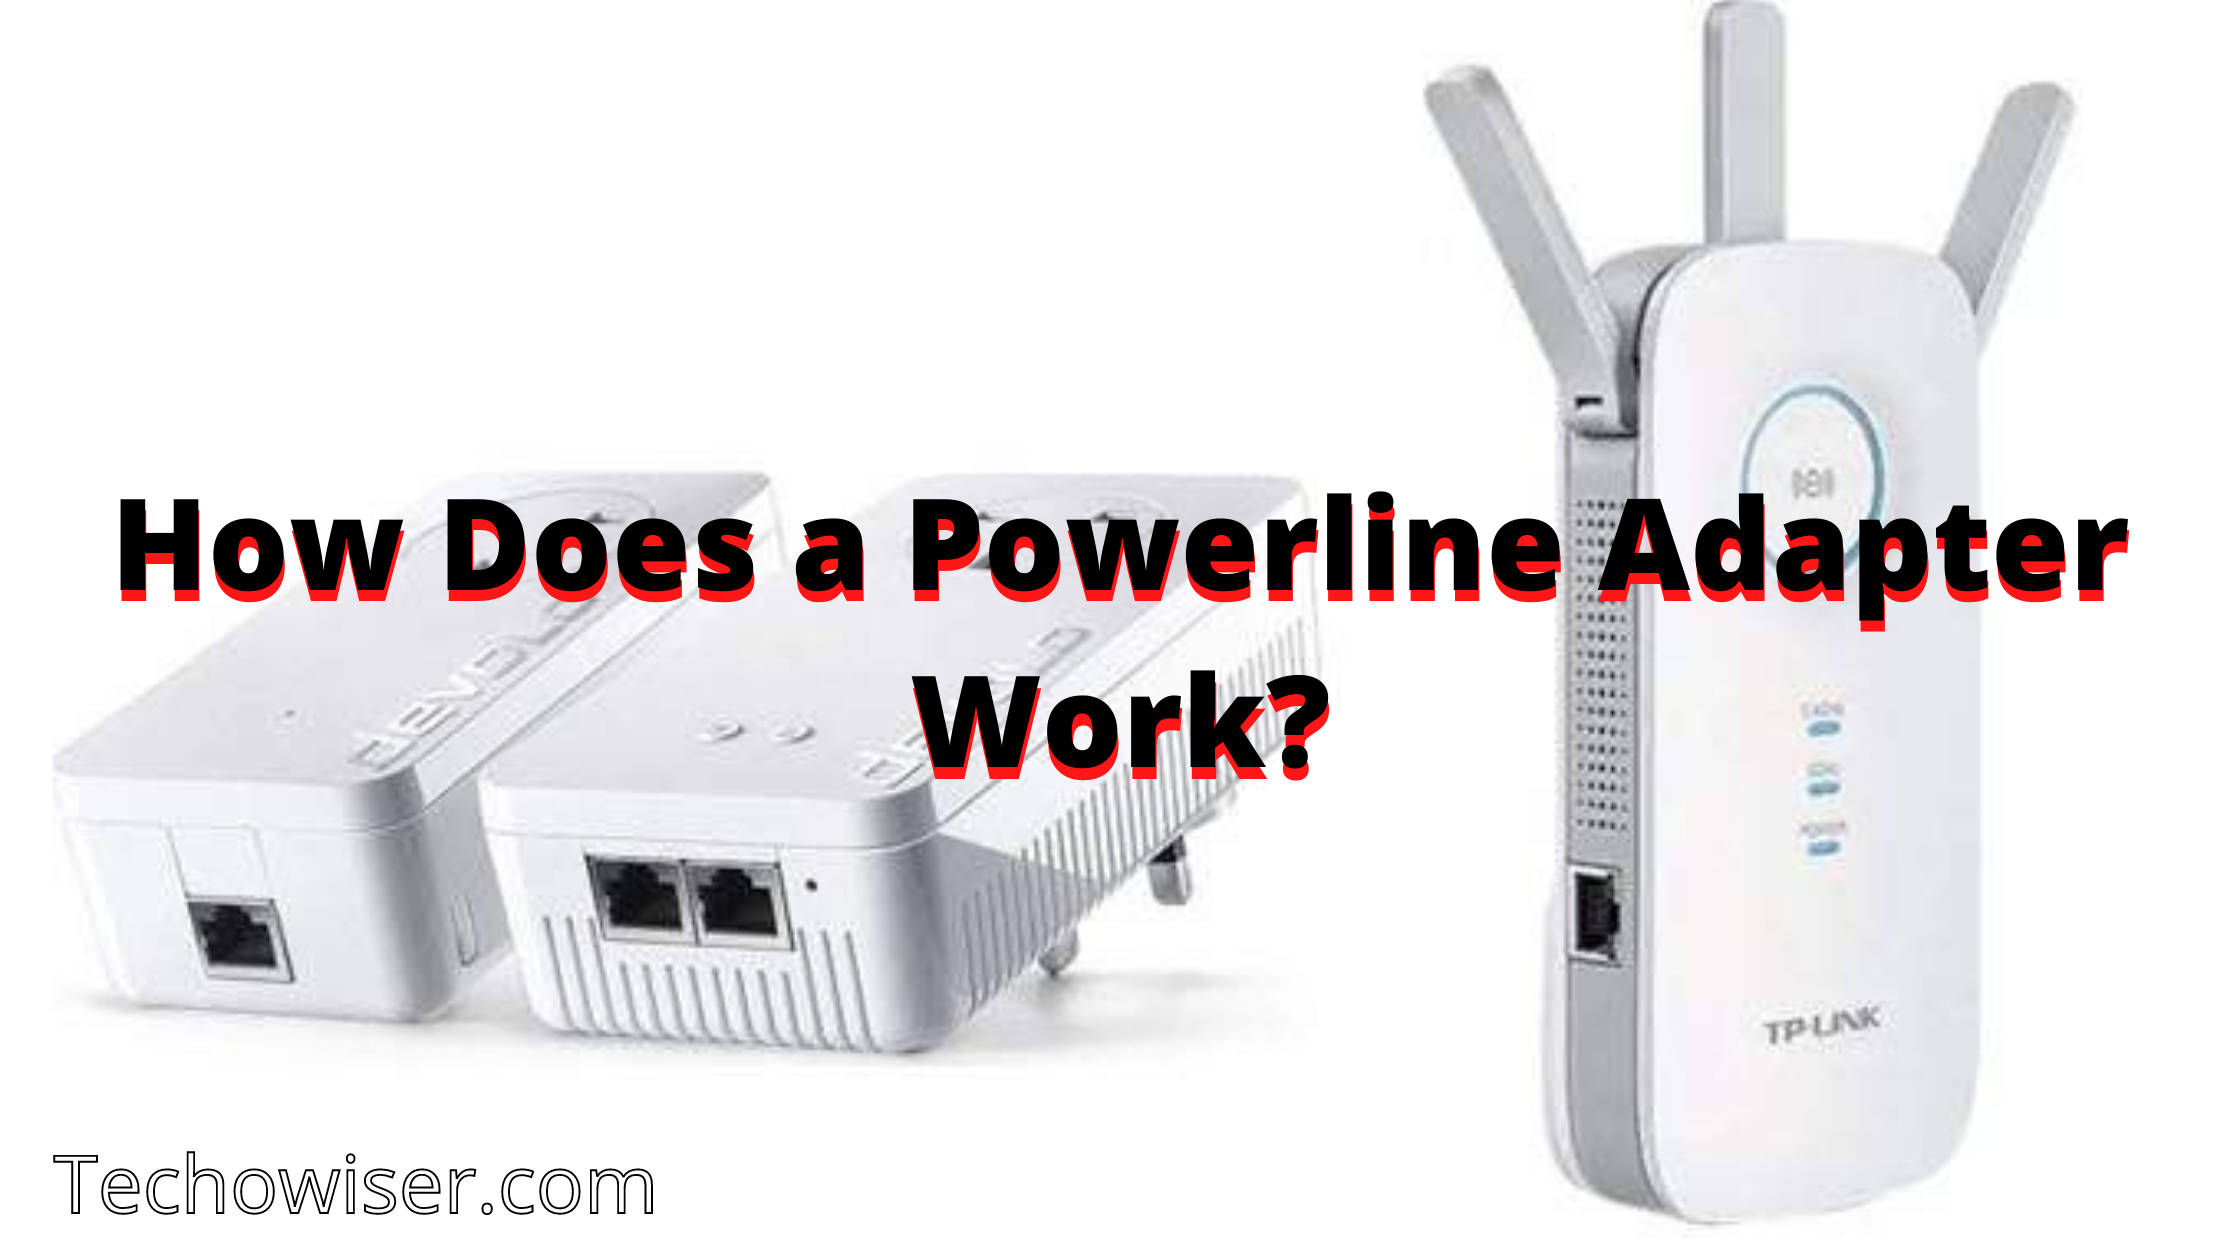 How Does a Powerline Adapter Work?